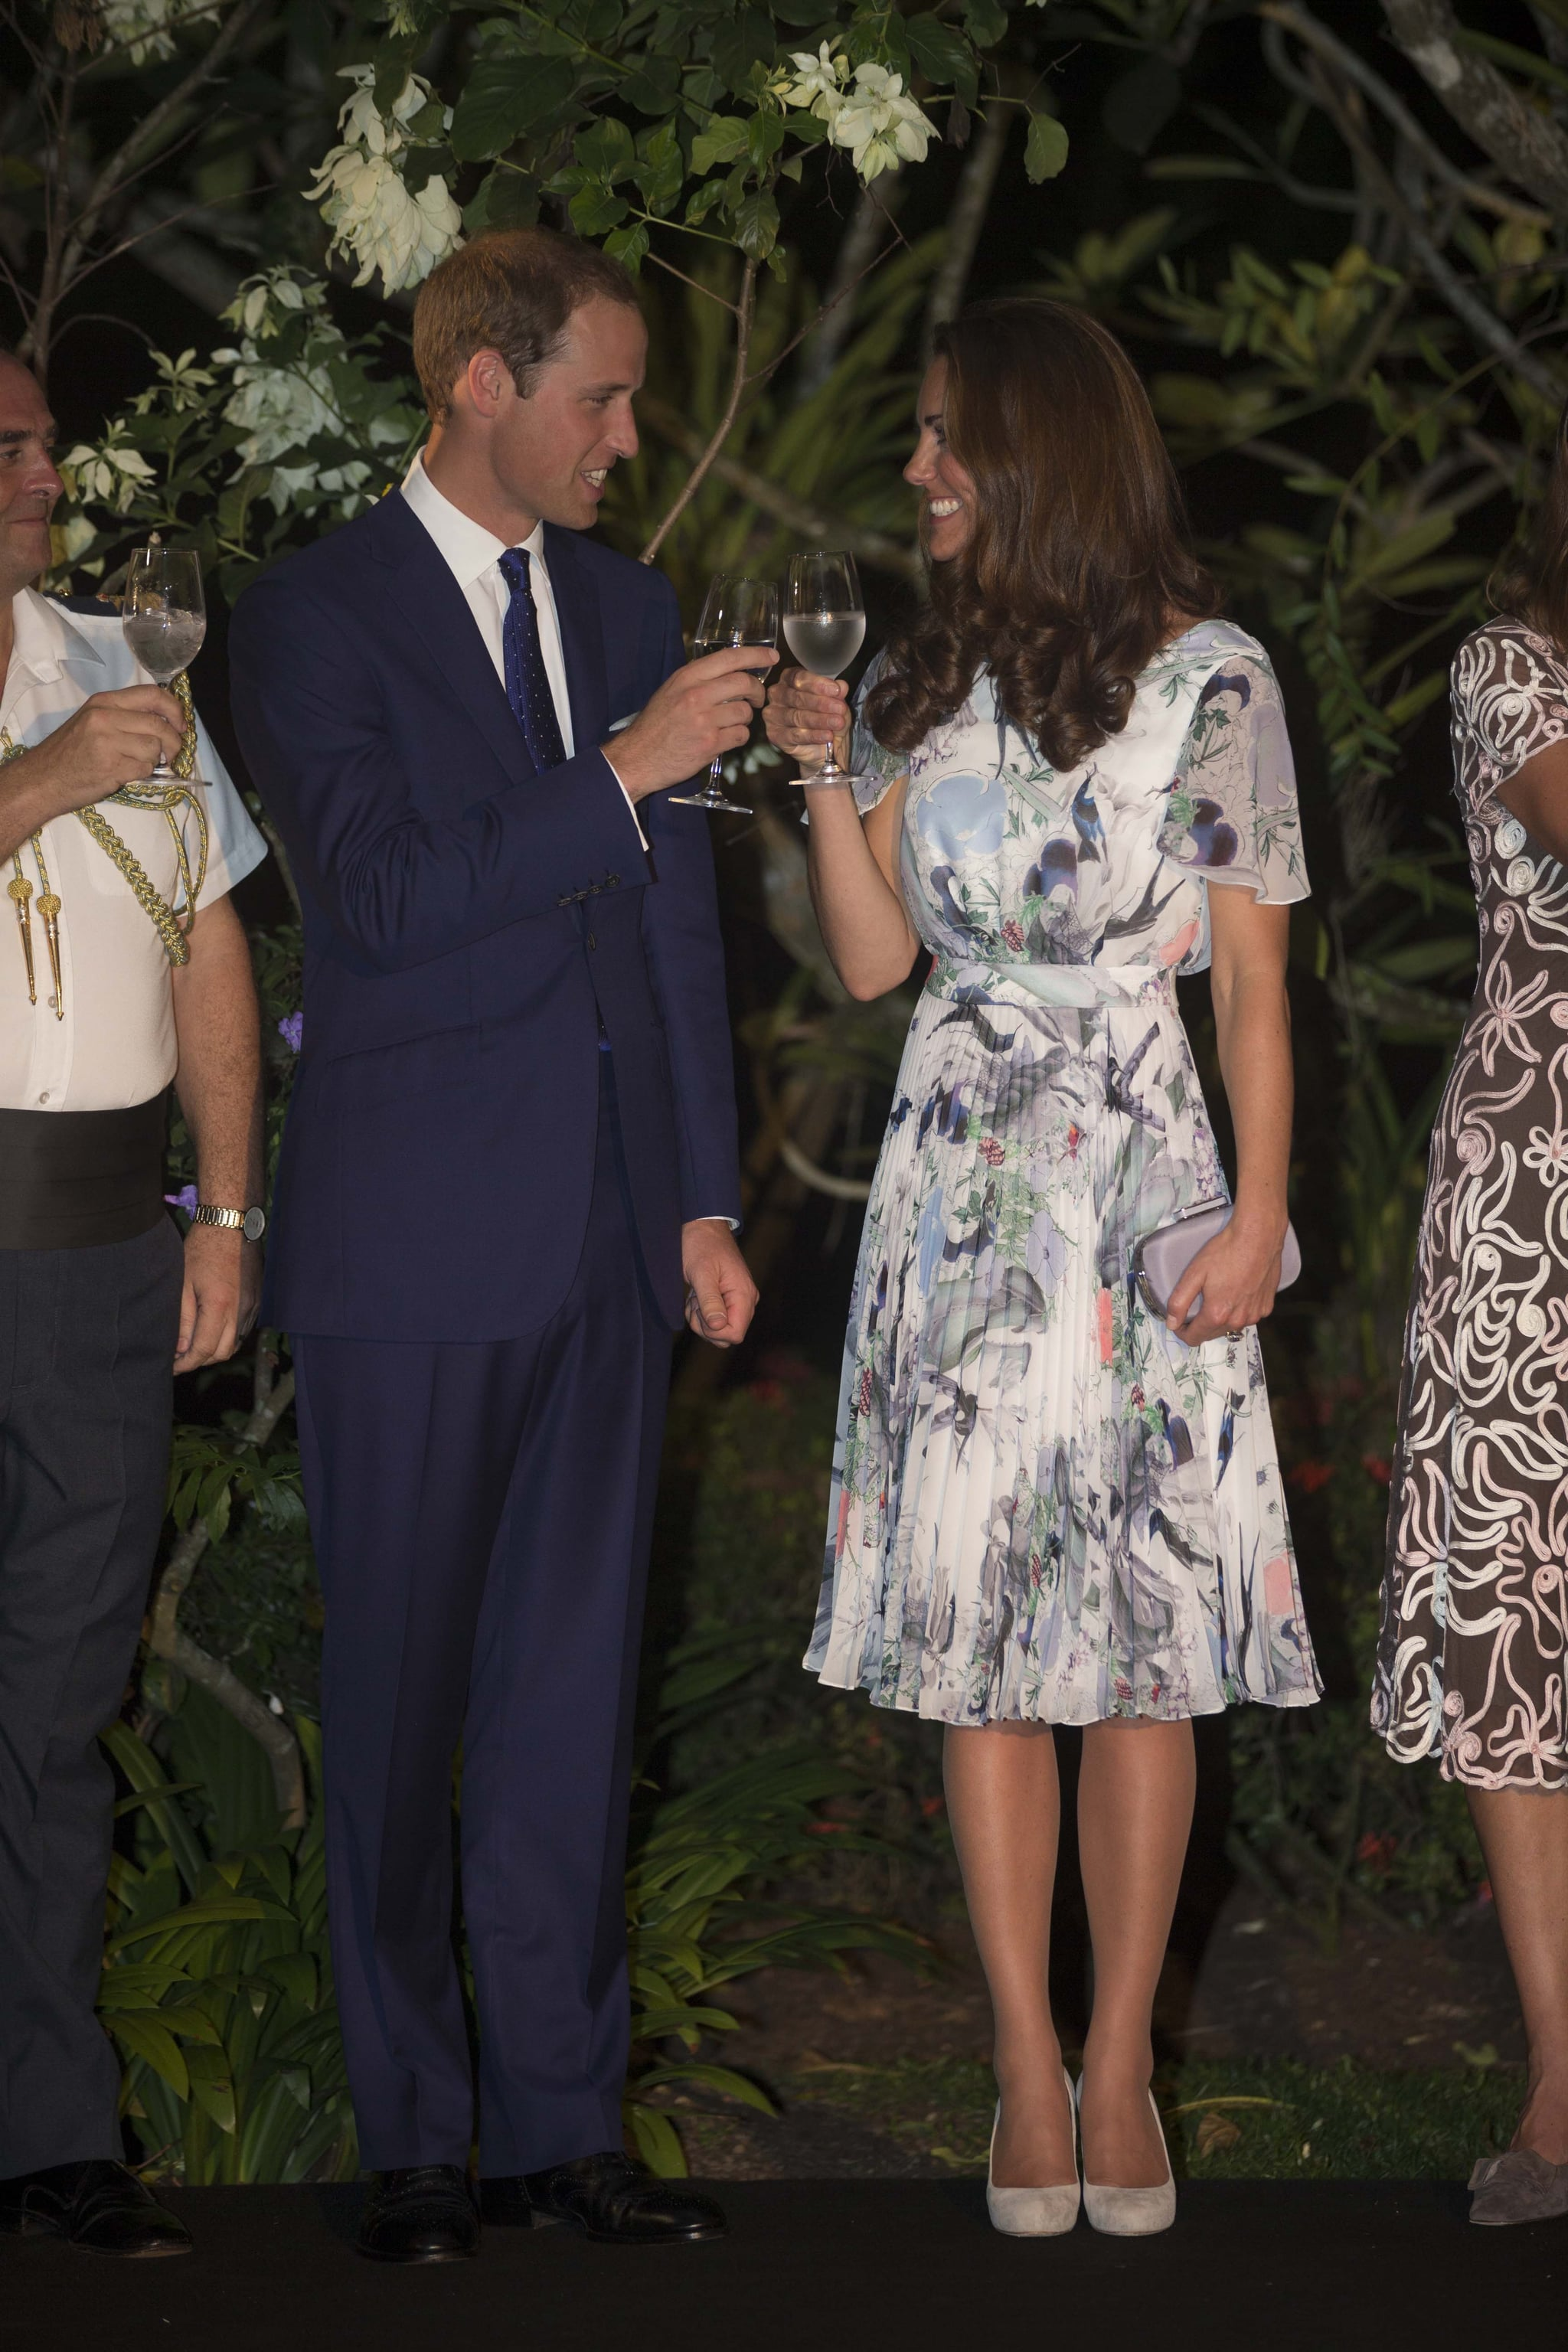 In September 2012, the couple toasted during their tour of South East Asia.